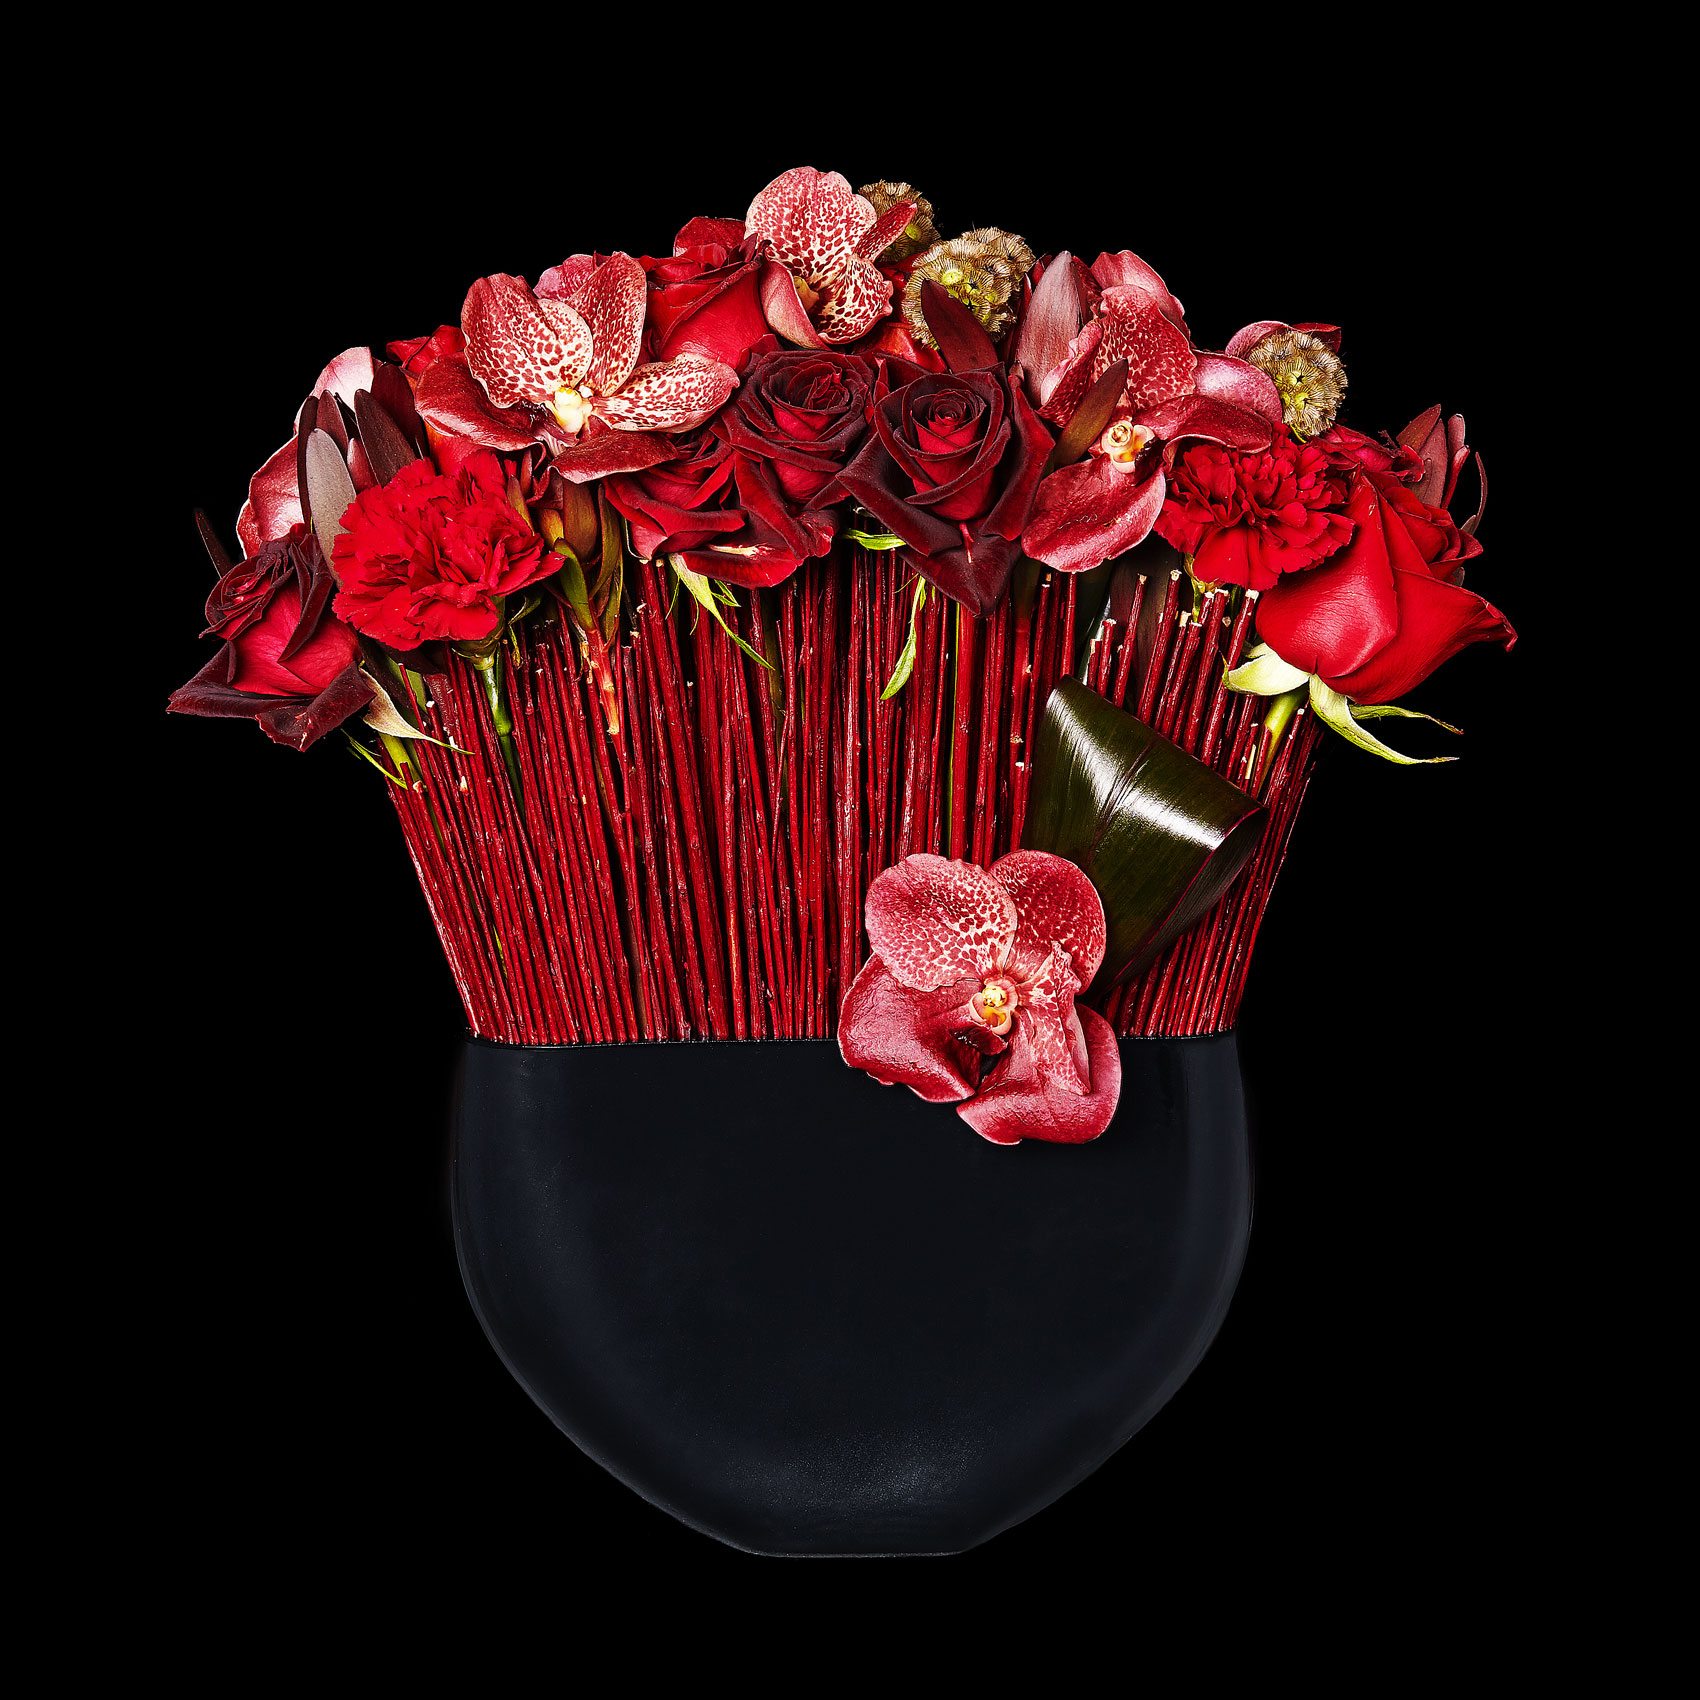 roses-orchids_red_floral_arrangement_valentines-day_ovando_ty-mecham